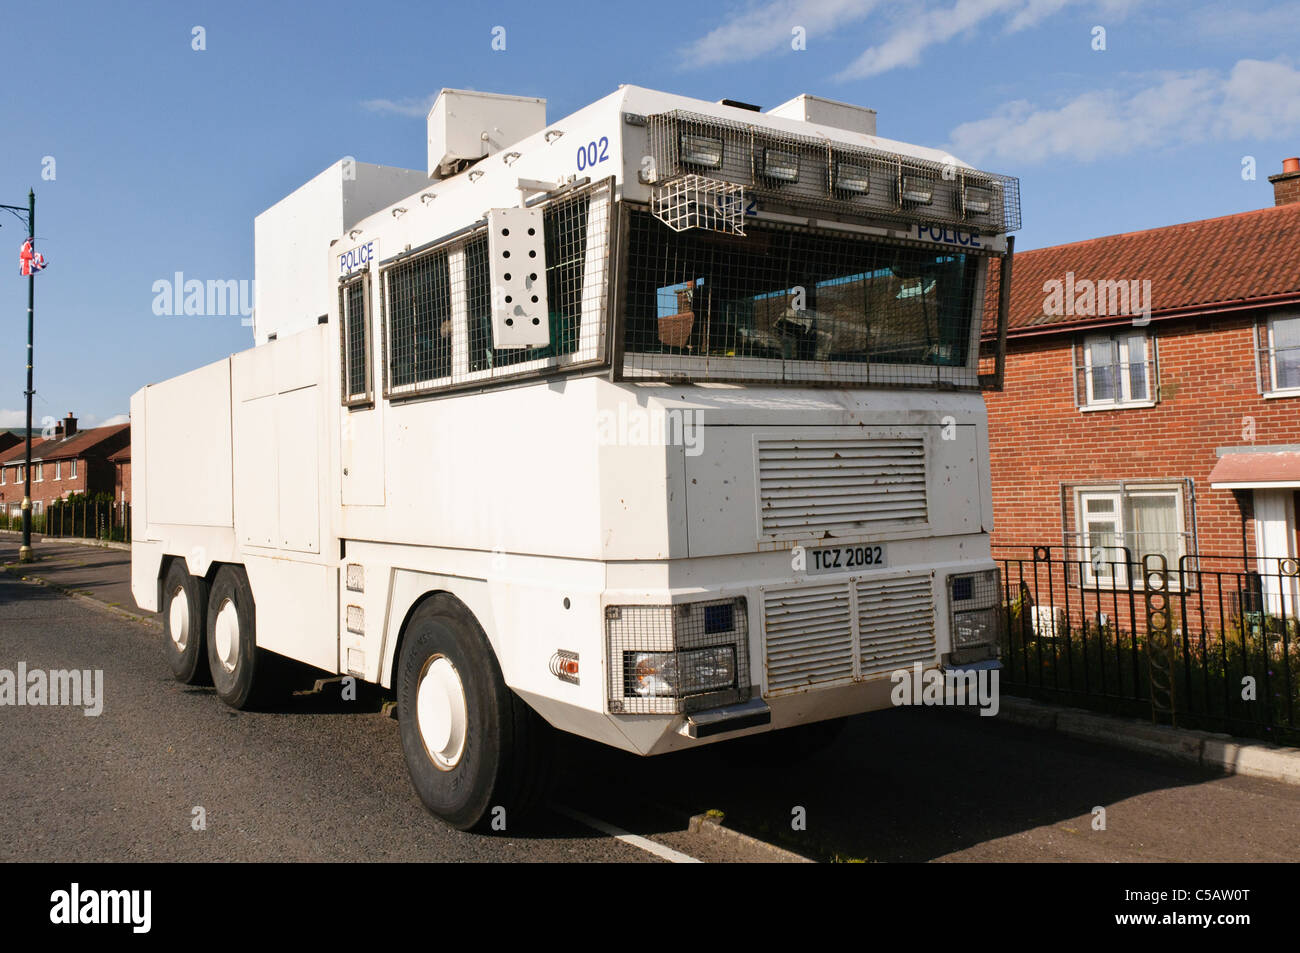 Police water cannon waits at an interface area ahead of expected civil disturbance. - Stock Image